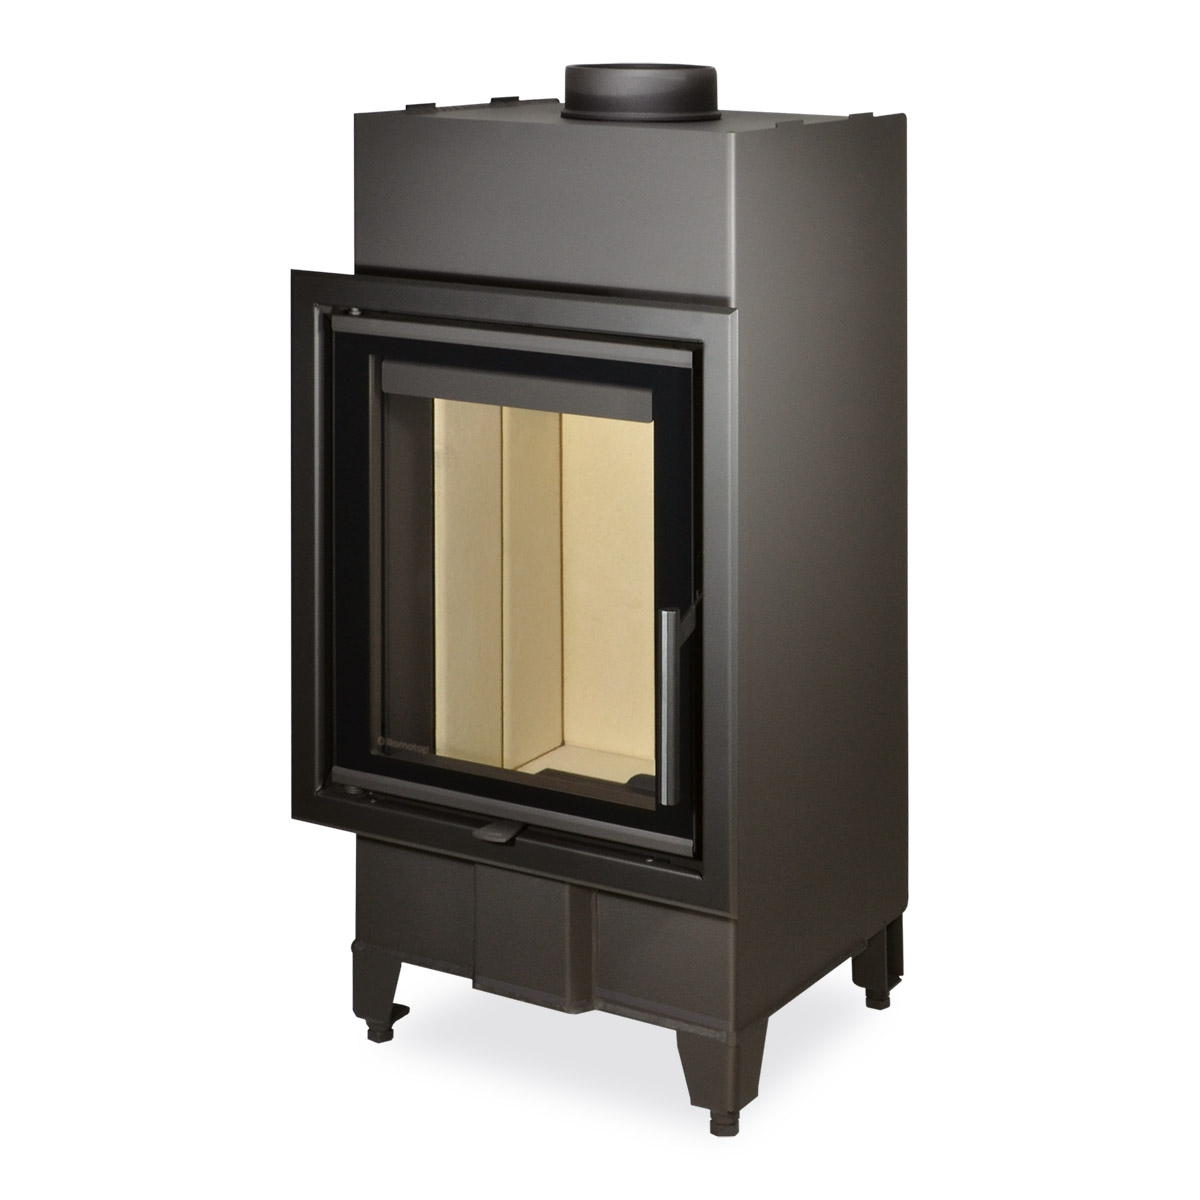 HEAT 2g 42.50.01 - straight fireplace insert